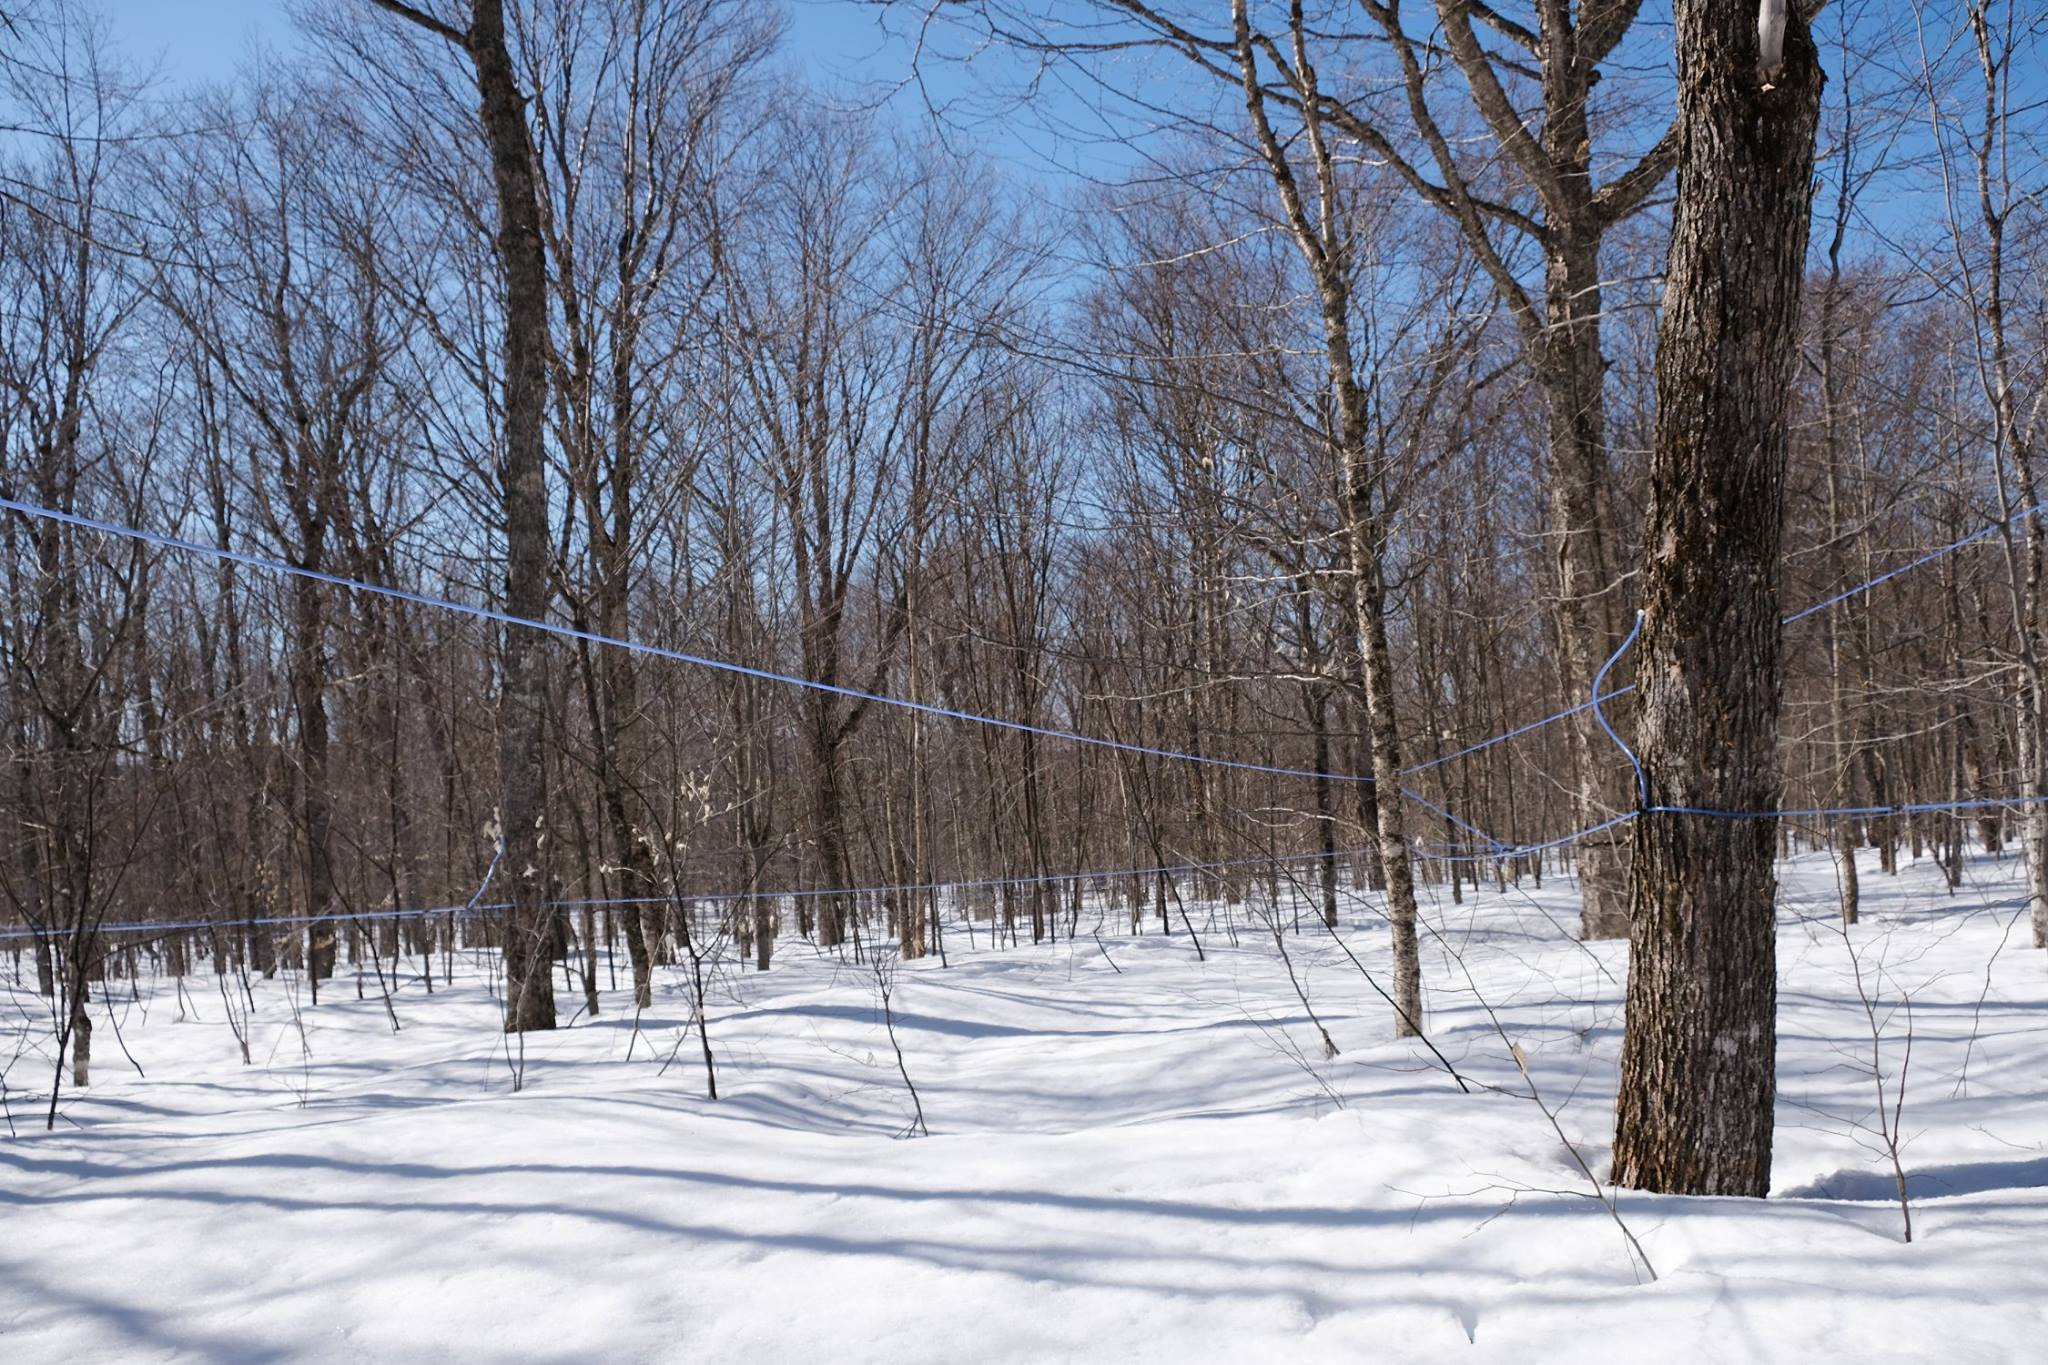 Tapped Maple trees in the winter